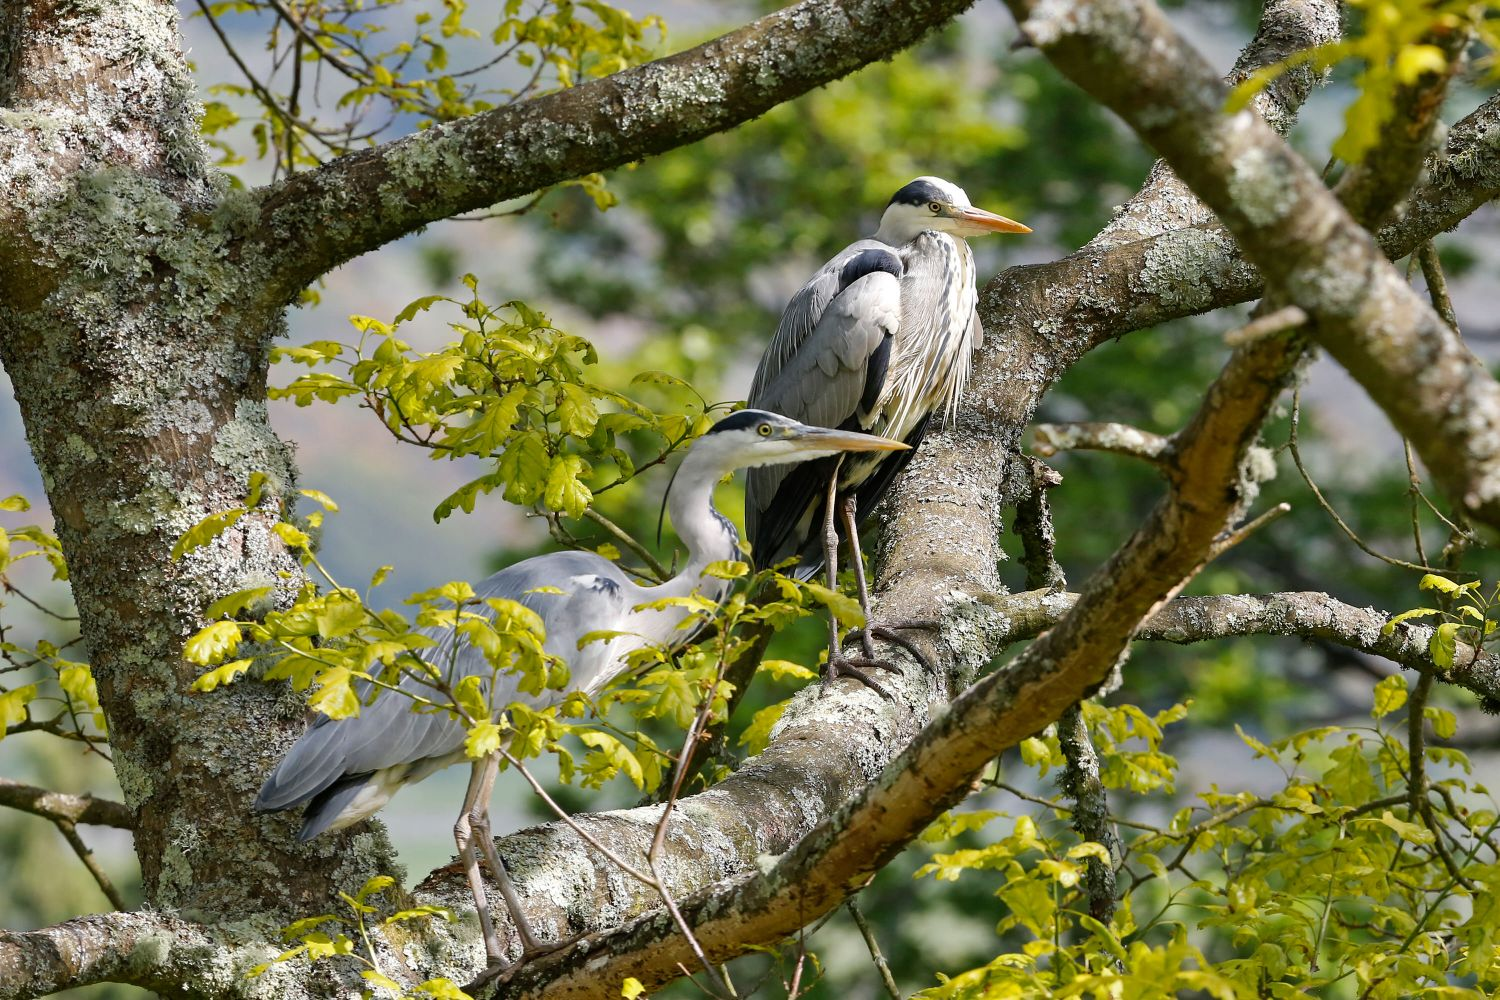 Two Grey Herons sunning themselves in an oak tree